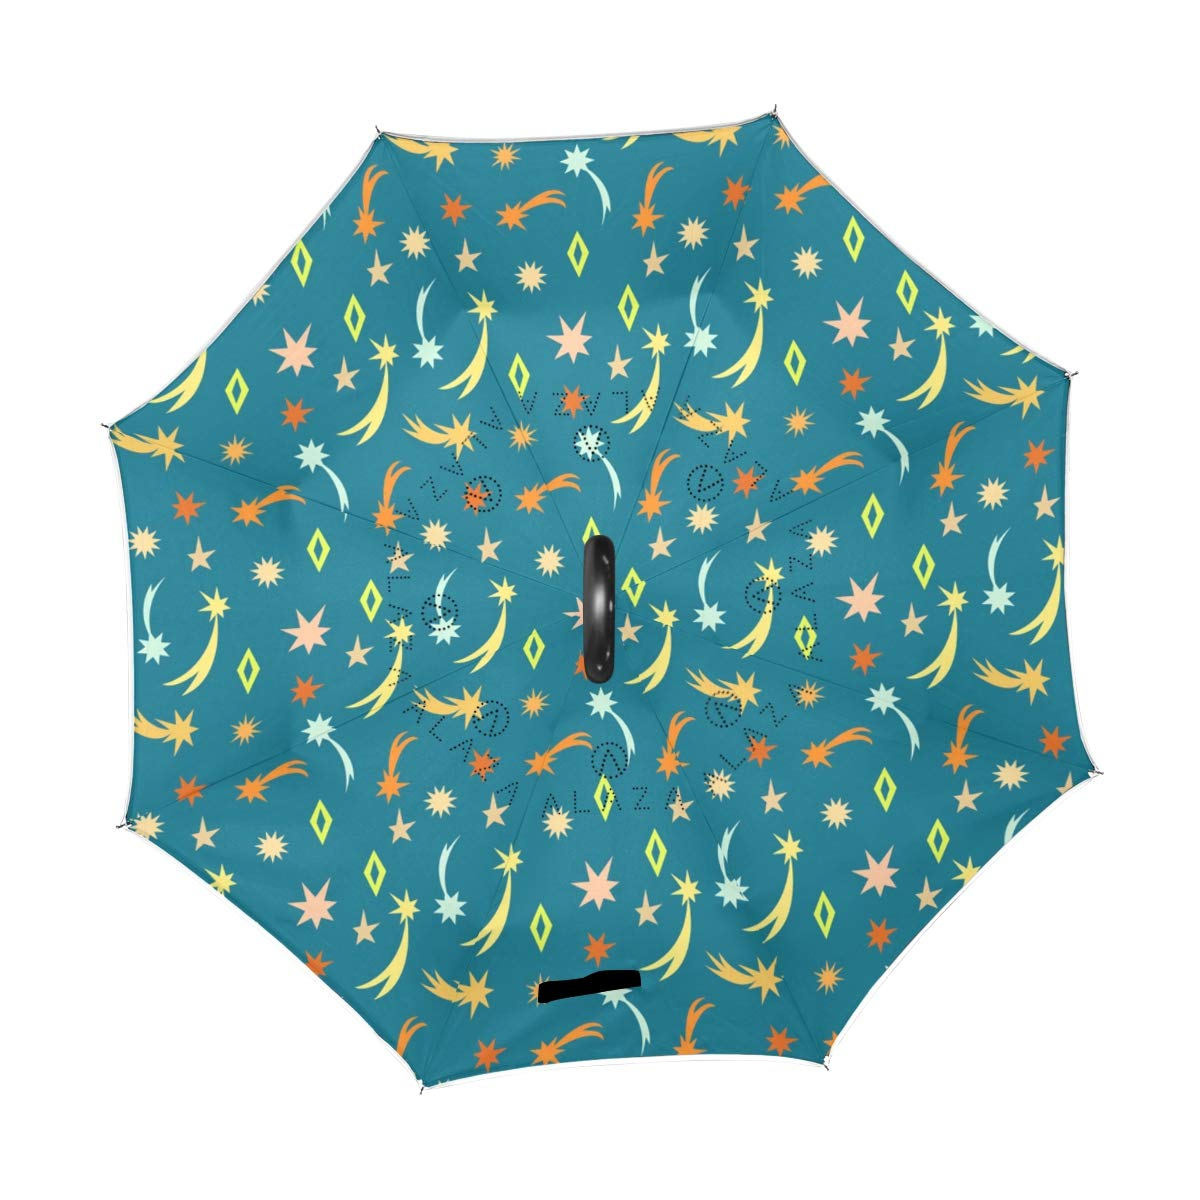 senya Double Layer Inverted Umbrellas Cute Meteor Stars Pattern Folding Umbrella Windproof UV Protection for Car Use Rain Outdoor With C-Shaped Handle by senya (Image #2)